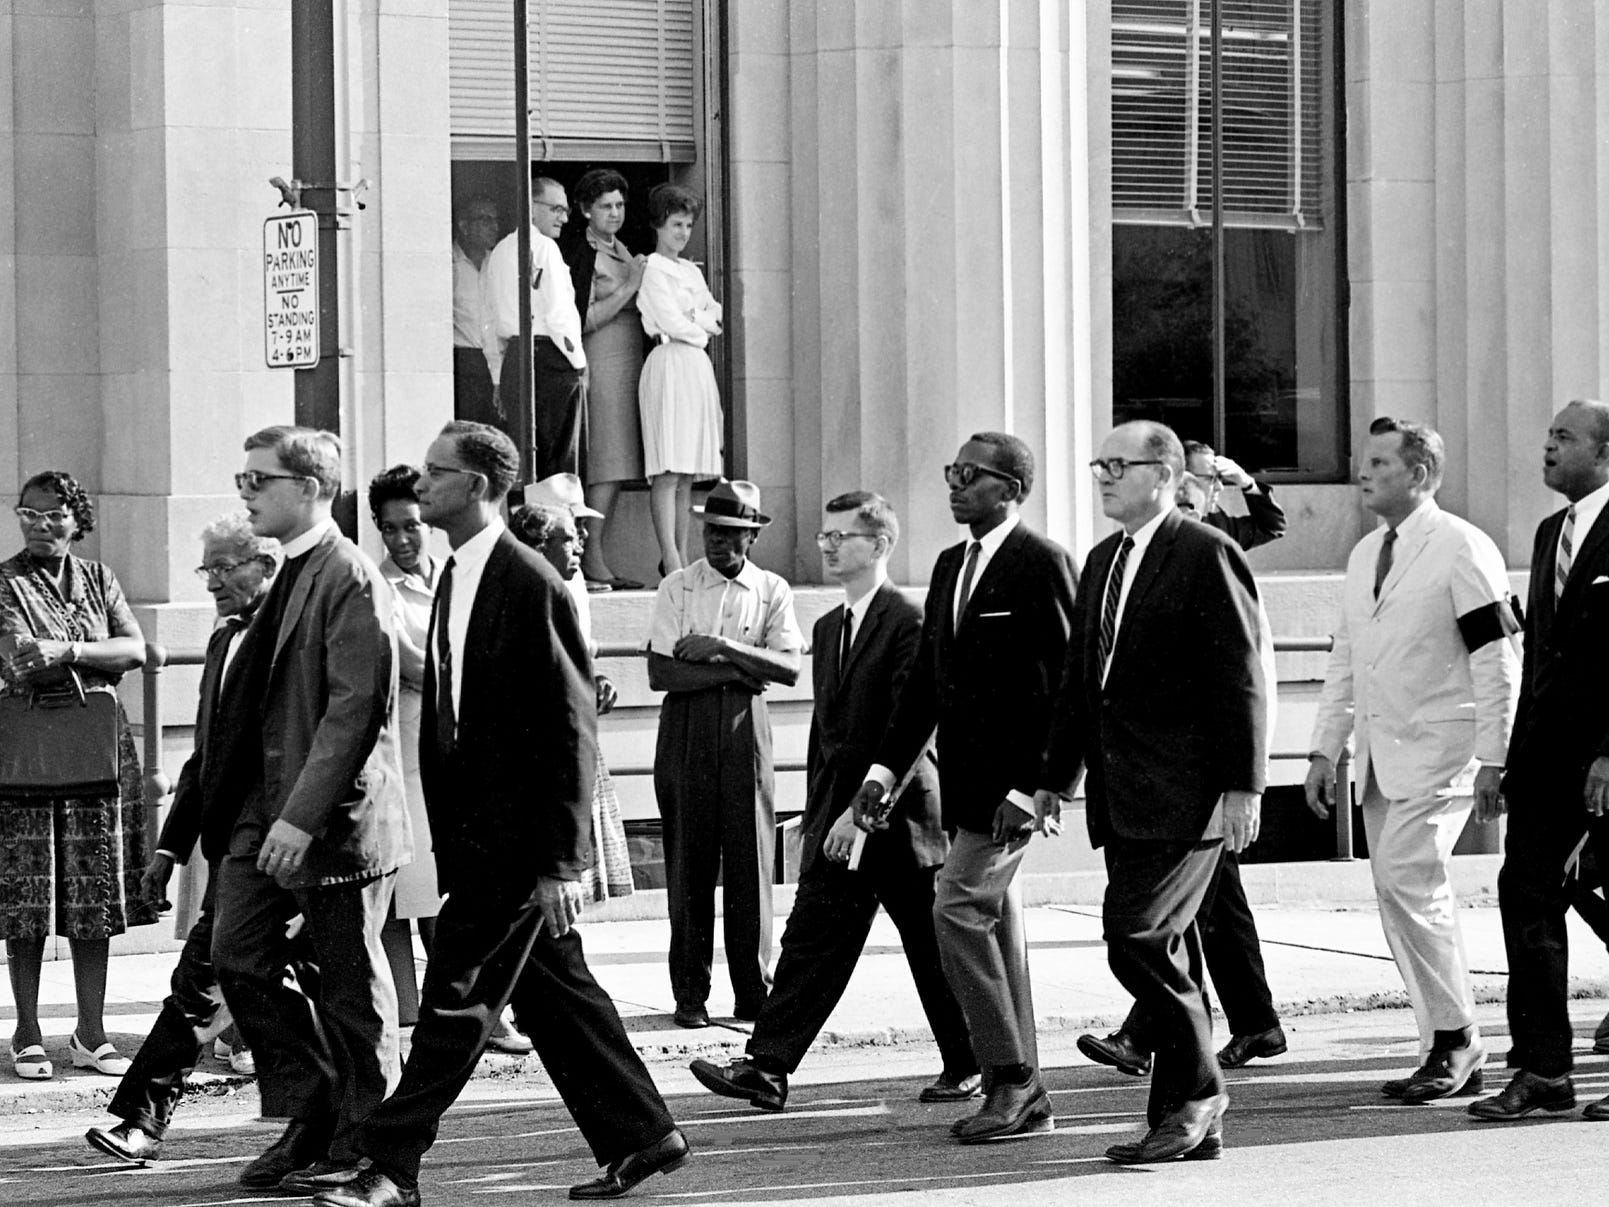 About 150 people march silently from Watkins Park to the steps of the state Capitol on Sept. 18, 1963, as a gesture of sympathy for the families of the four girls killed in the Birmingham, Ala., church bombing. The march, sponsored by the Nashville branch of the NAACP, took place during the funeral services in Birmingham for three of the four victims.